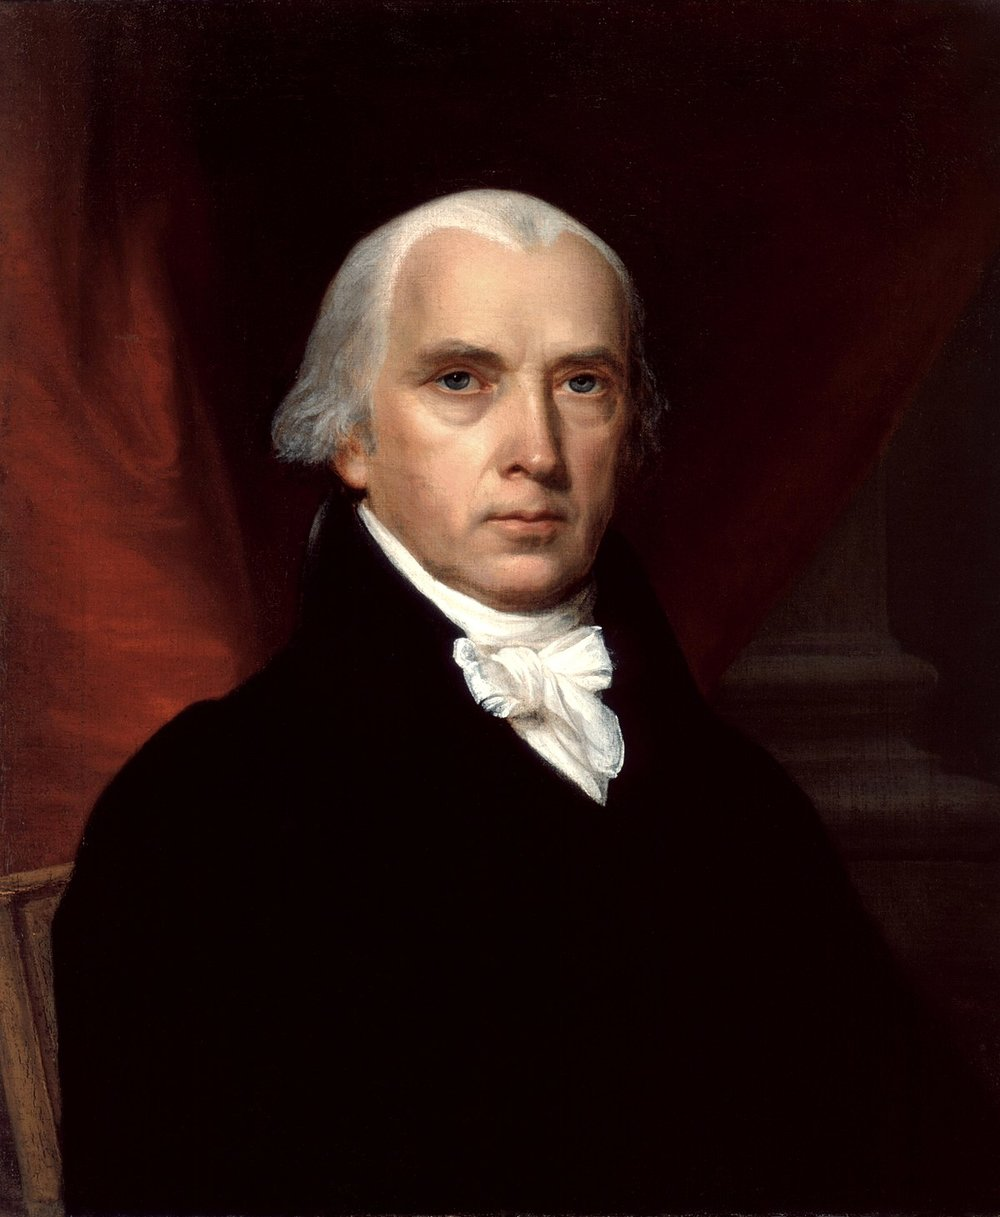 James Madison, formulation of the bill of rights